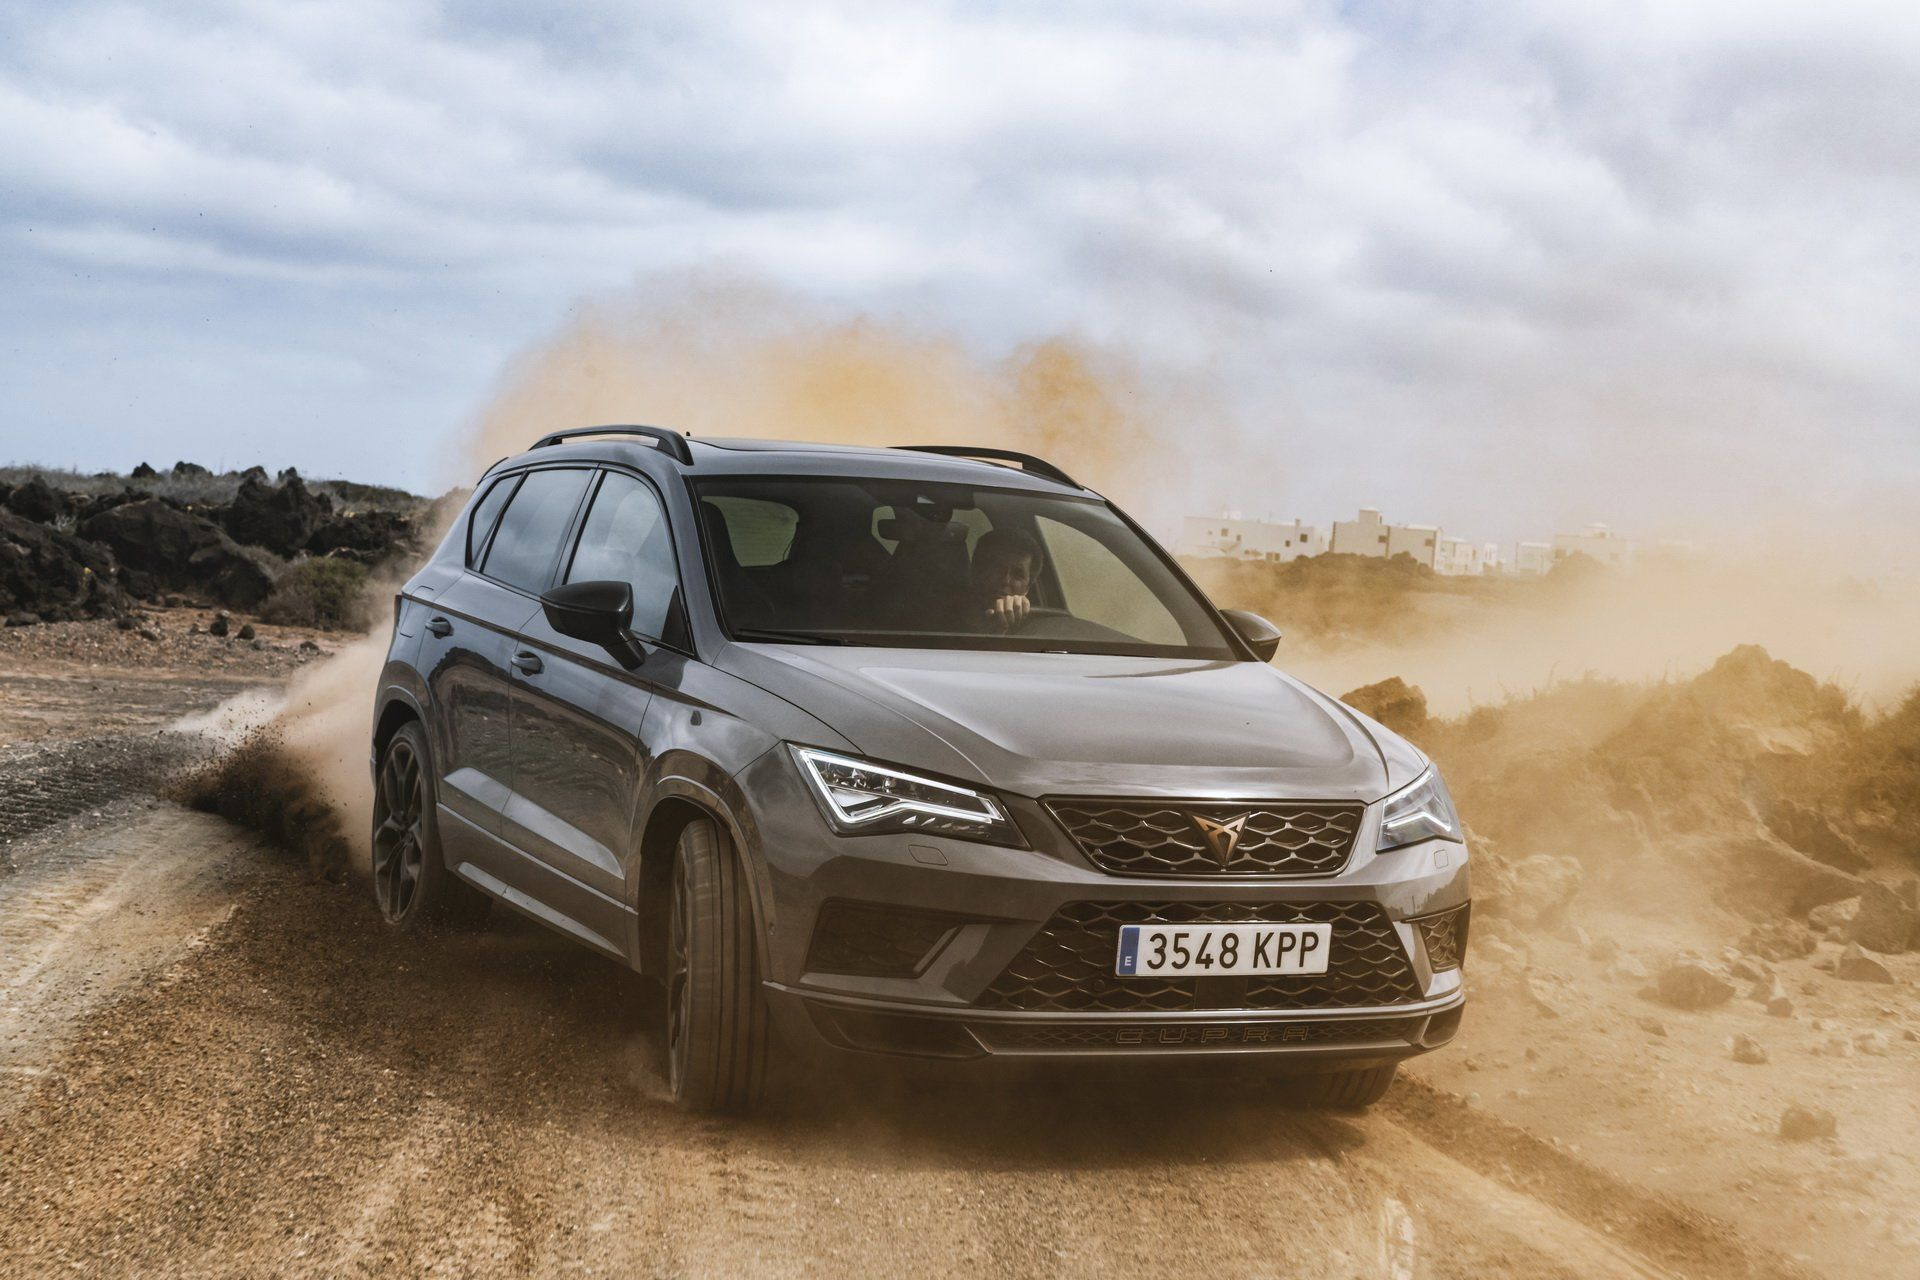 Cupra-Ateca-Limited-Edition-28